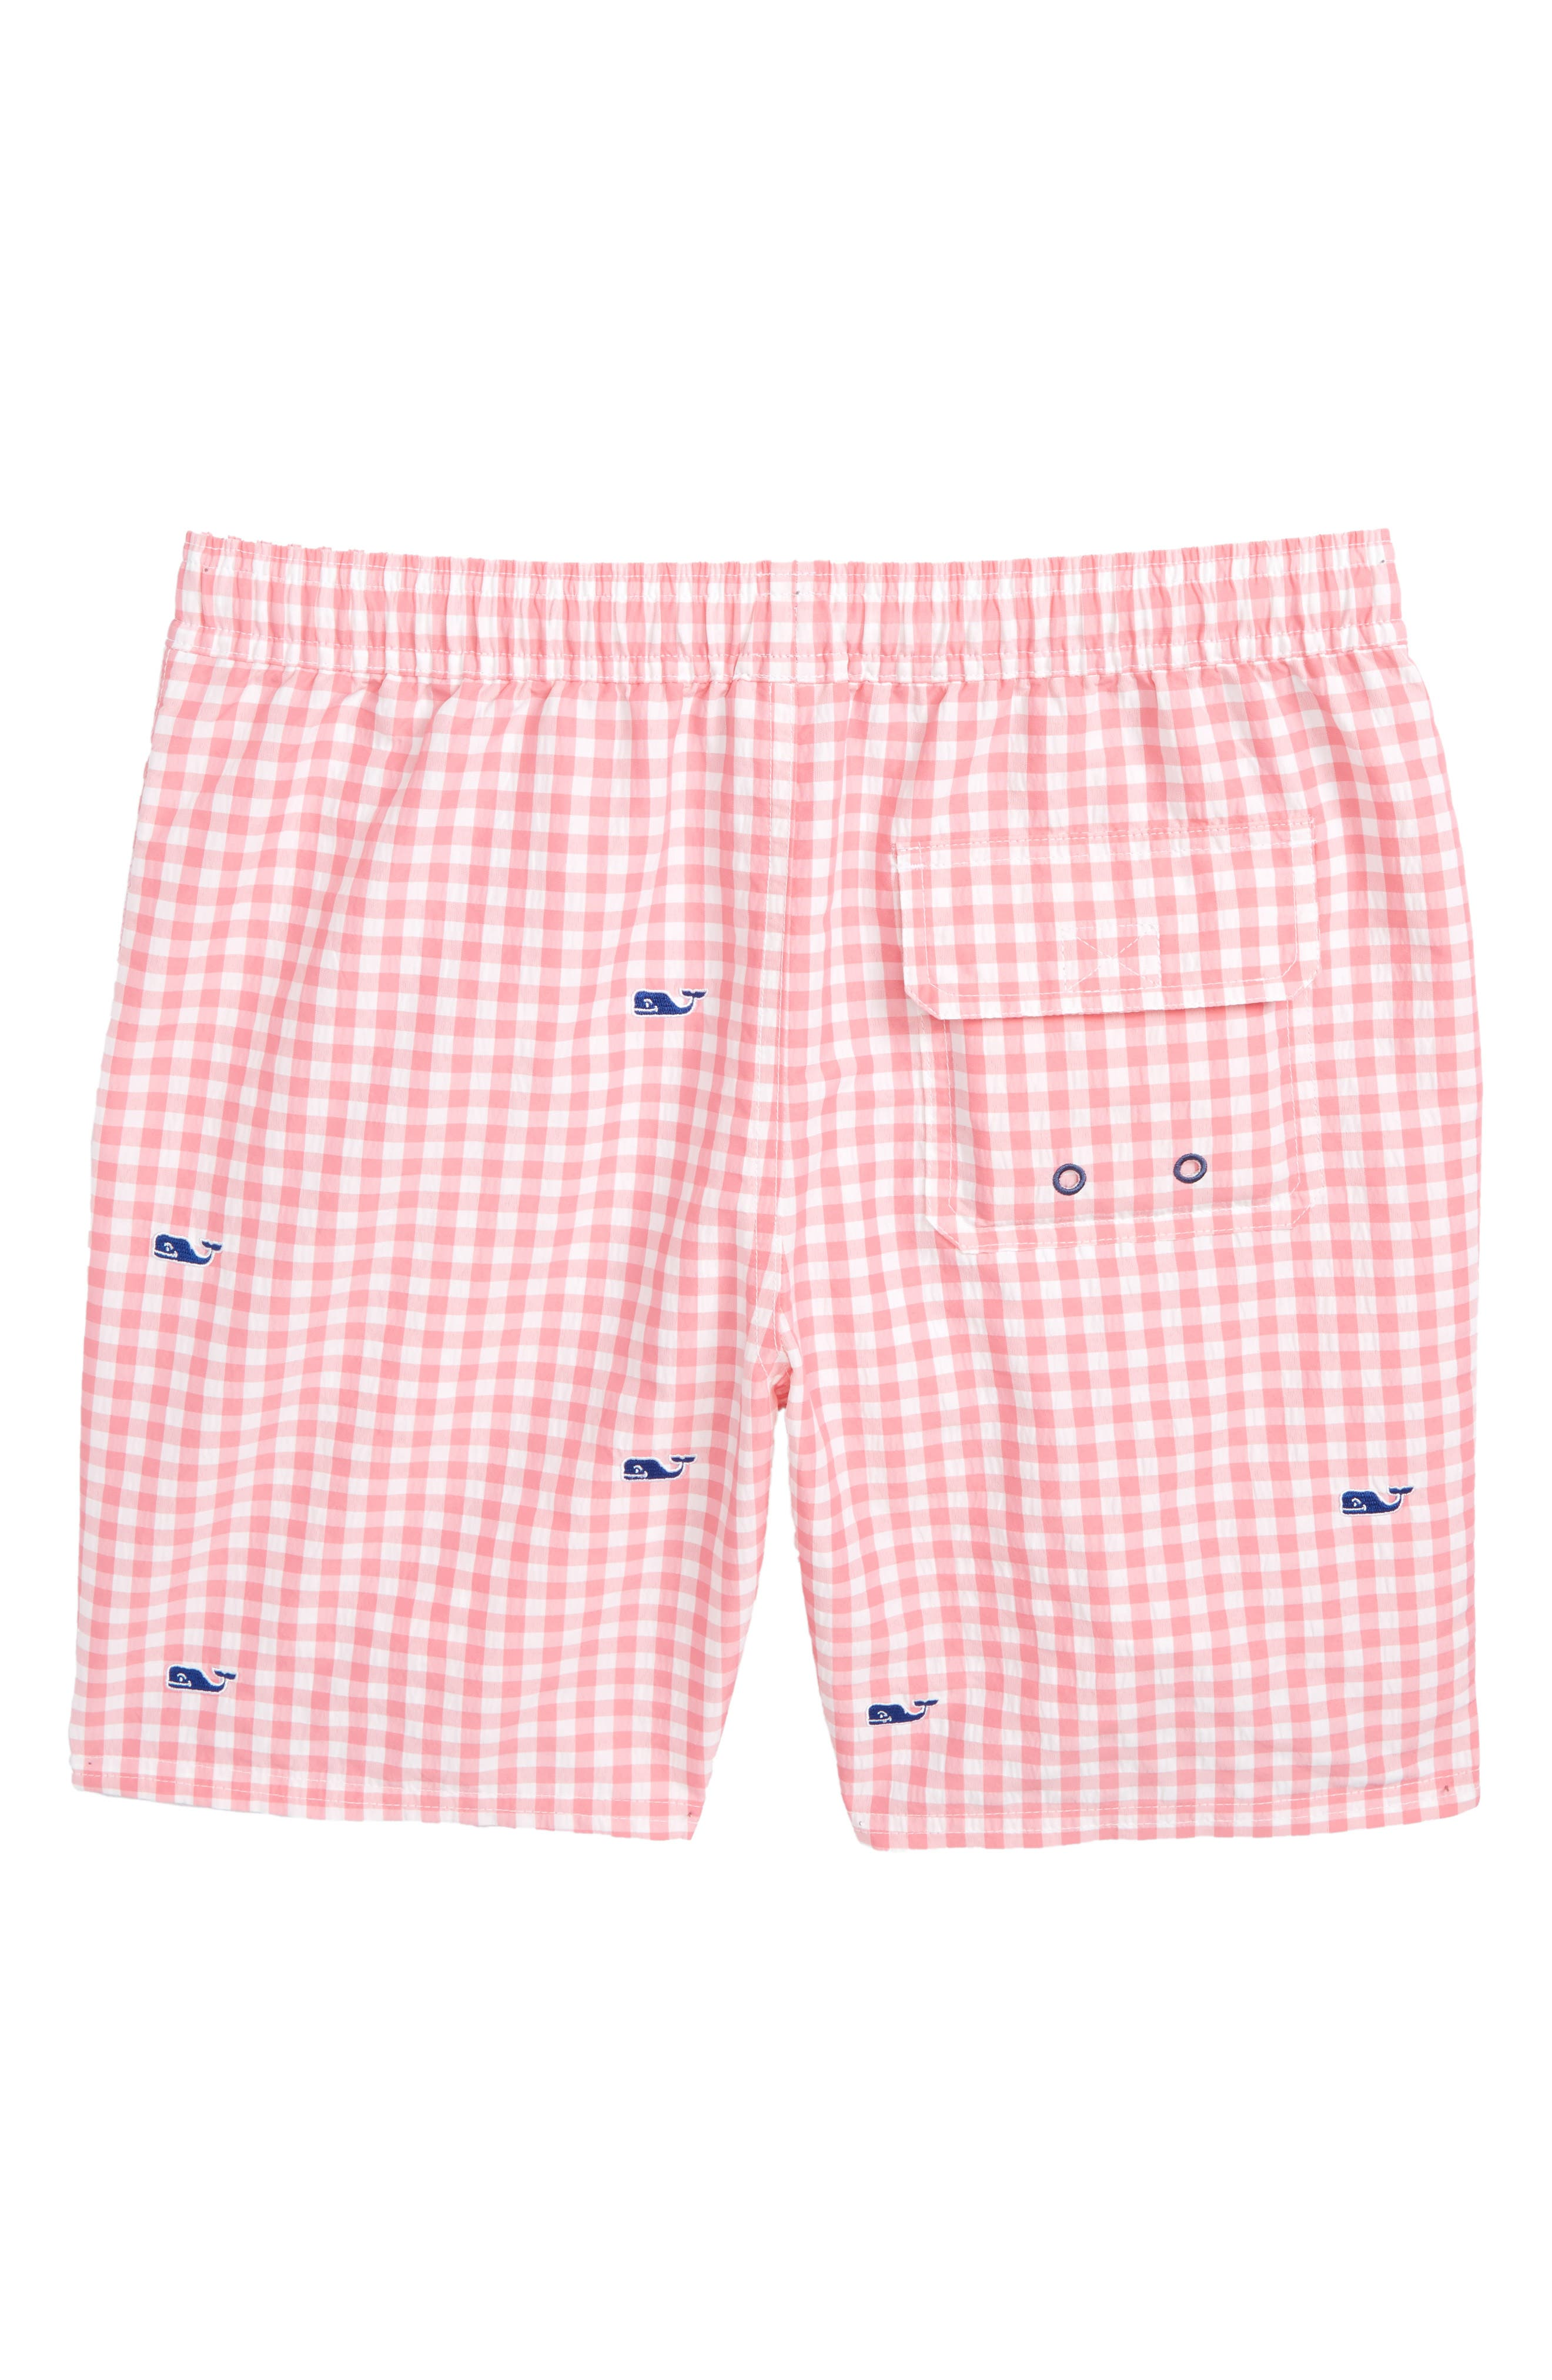 Embroidered Micro Gingham Check Swim Trunks,                             Alternate thumbnail 2, color,                             400